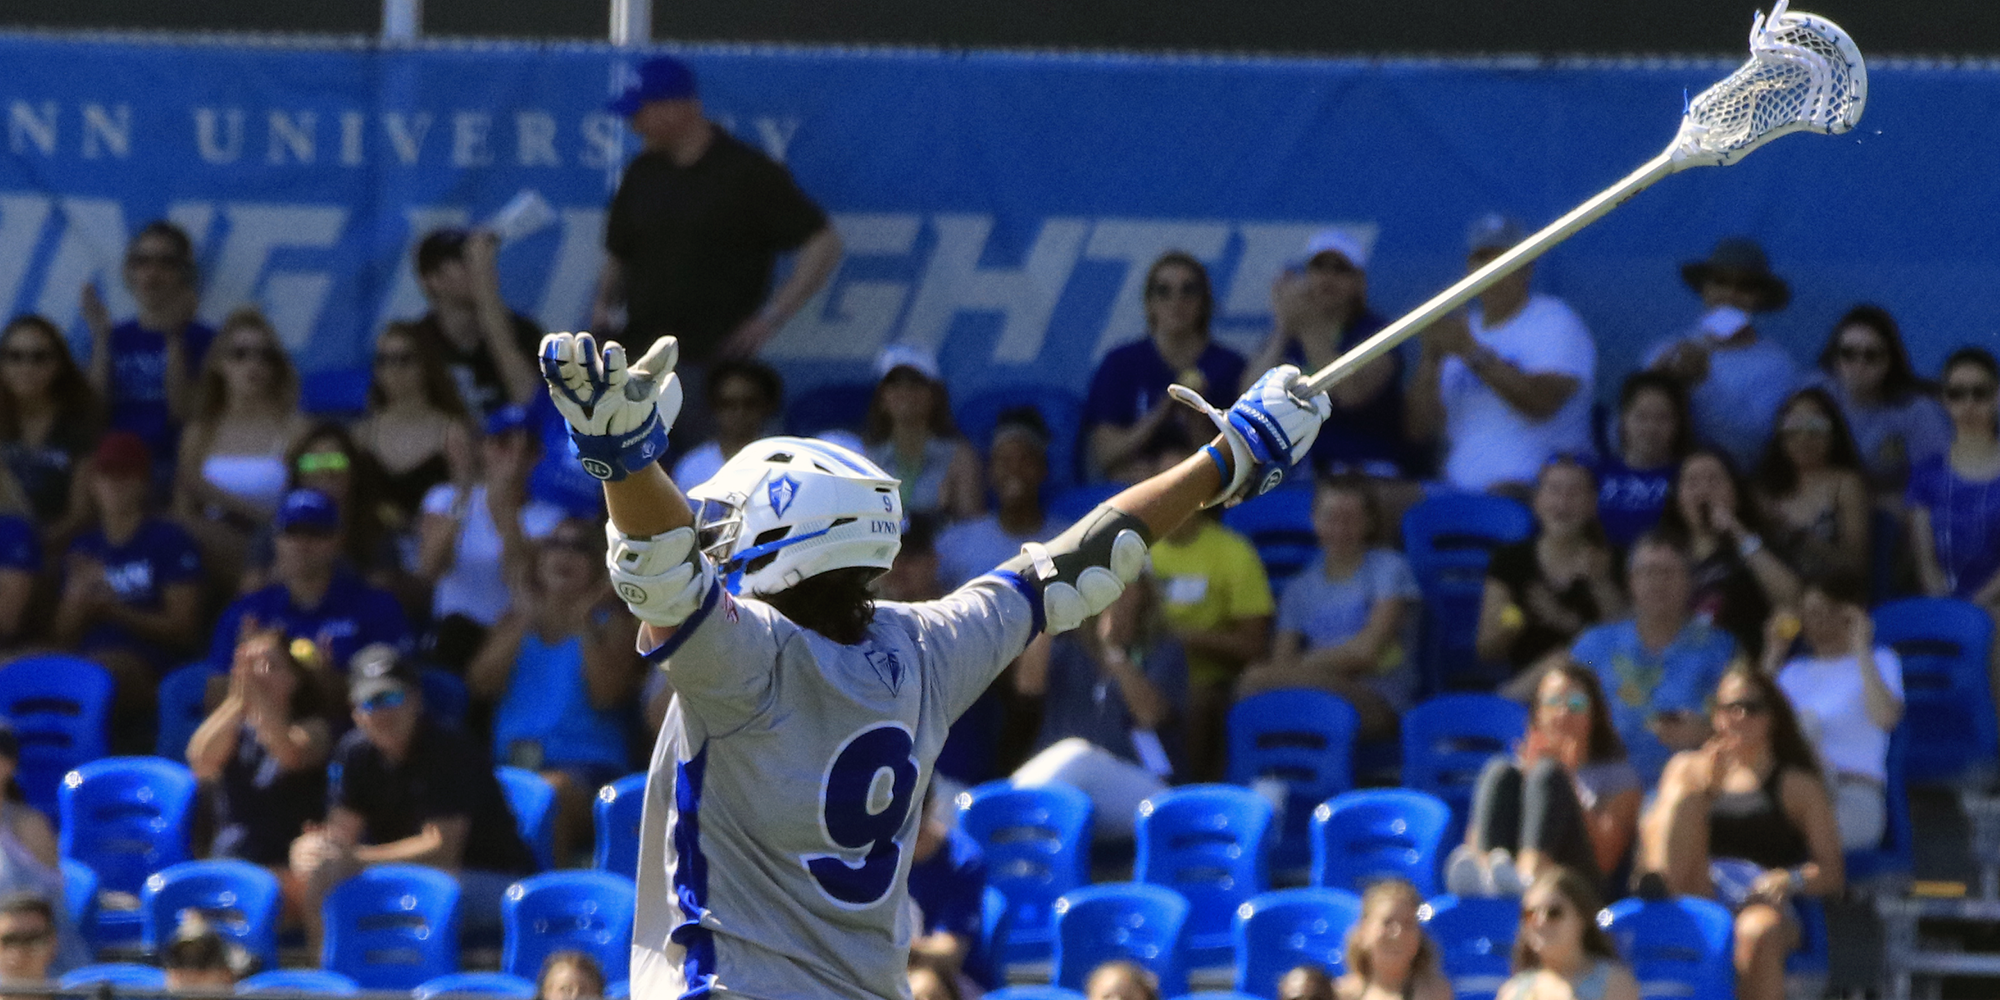 Men's Lacrosse Opens 2019 Campaign with Statement Victory over No. 7 NYIT